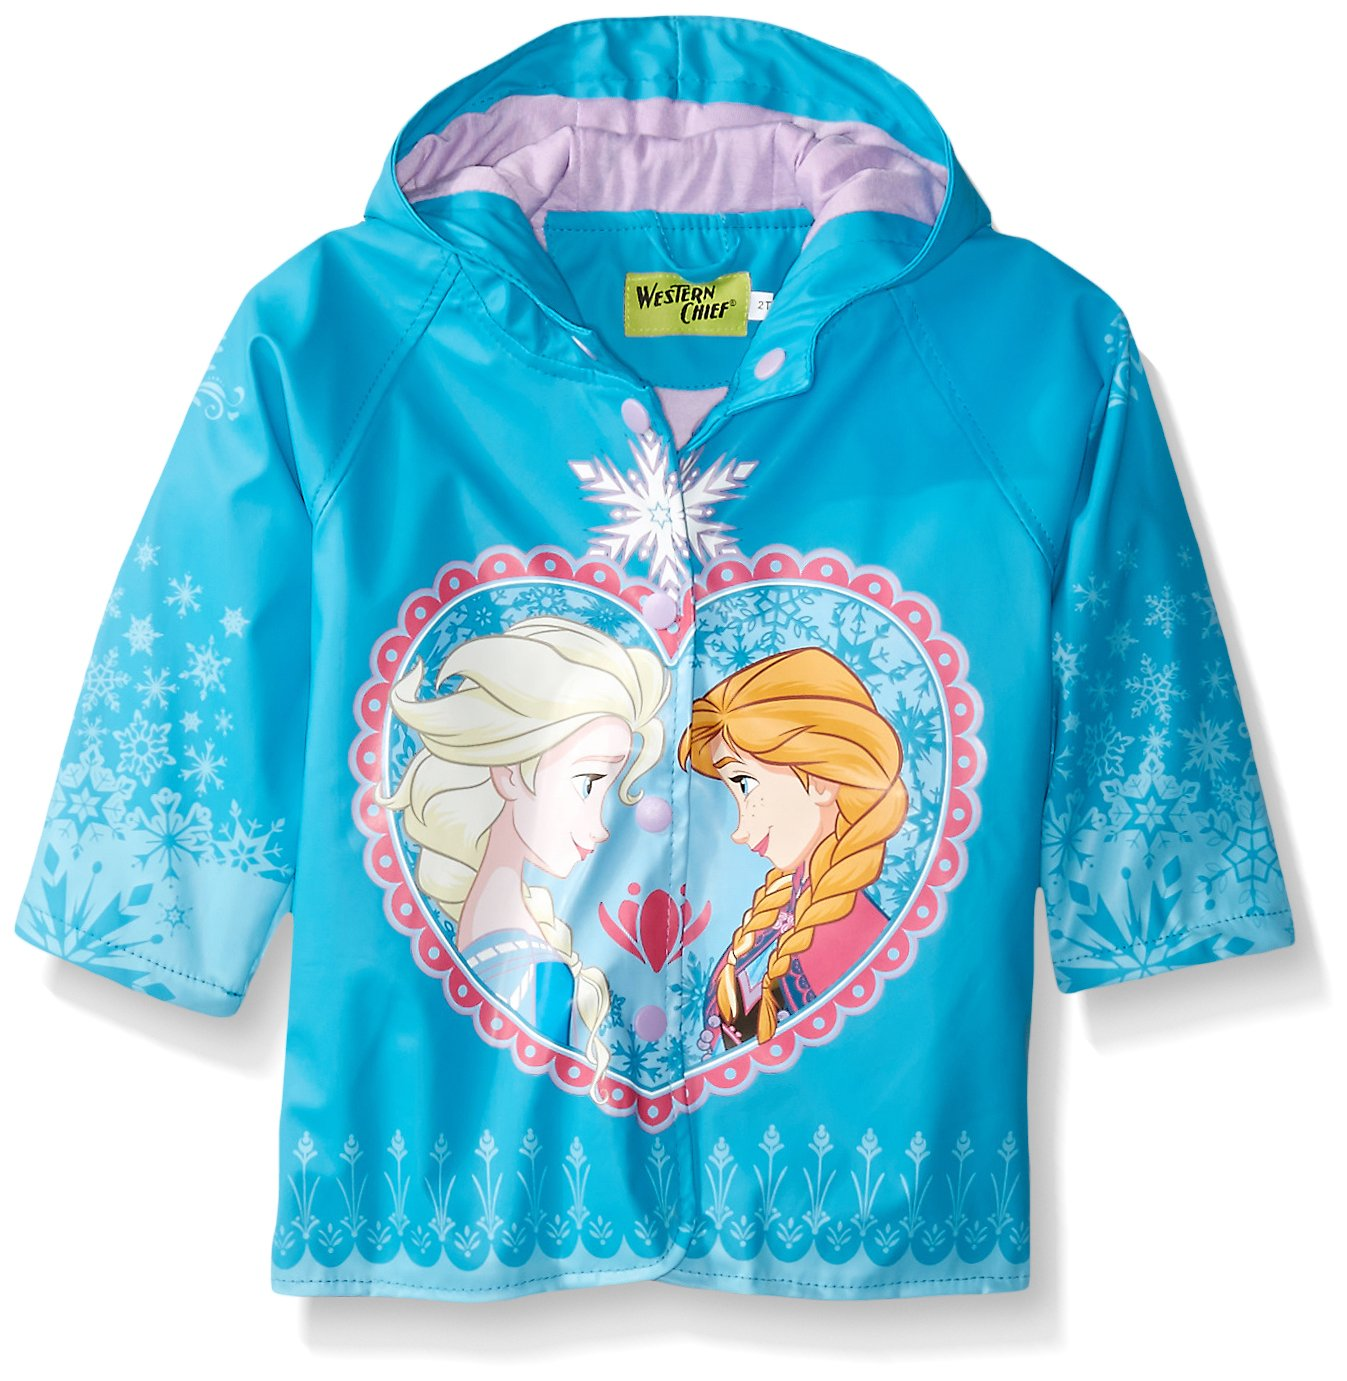 Western Chief Kids Disney Character lined Rain Jacket, Frozen Anna and Elsa, 4T by Western Chief